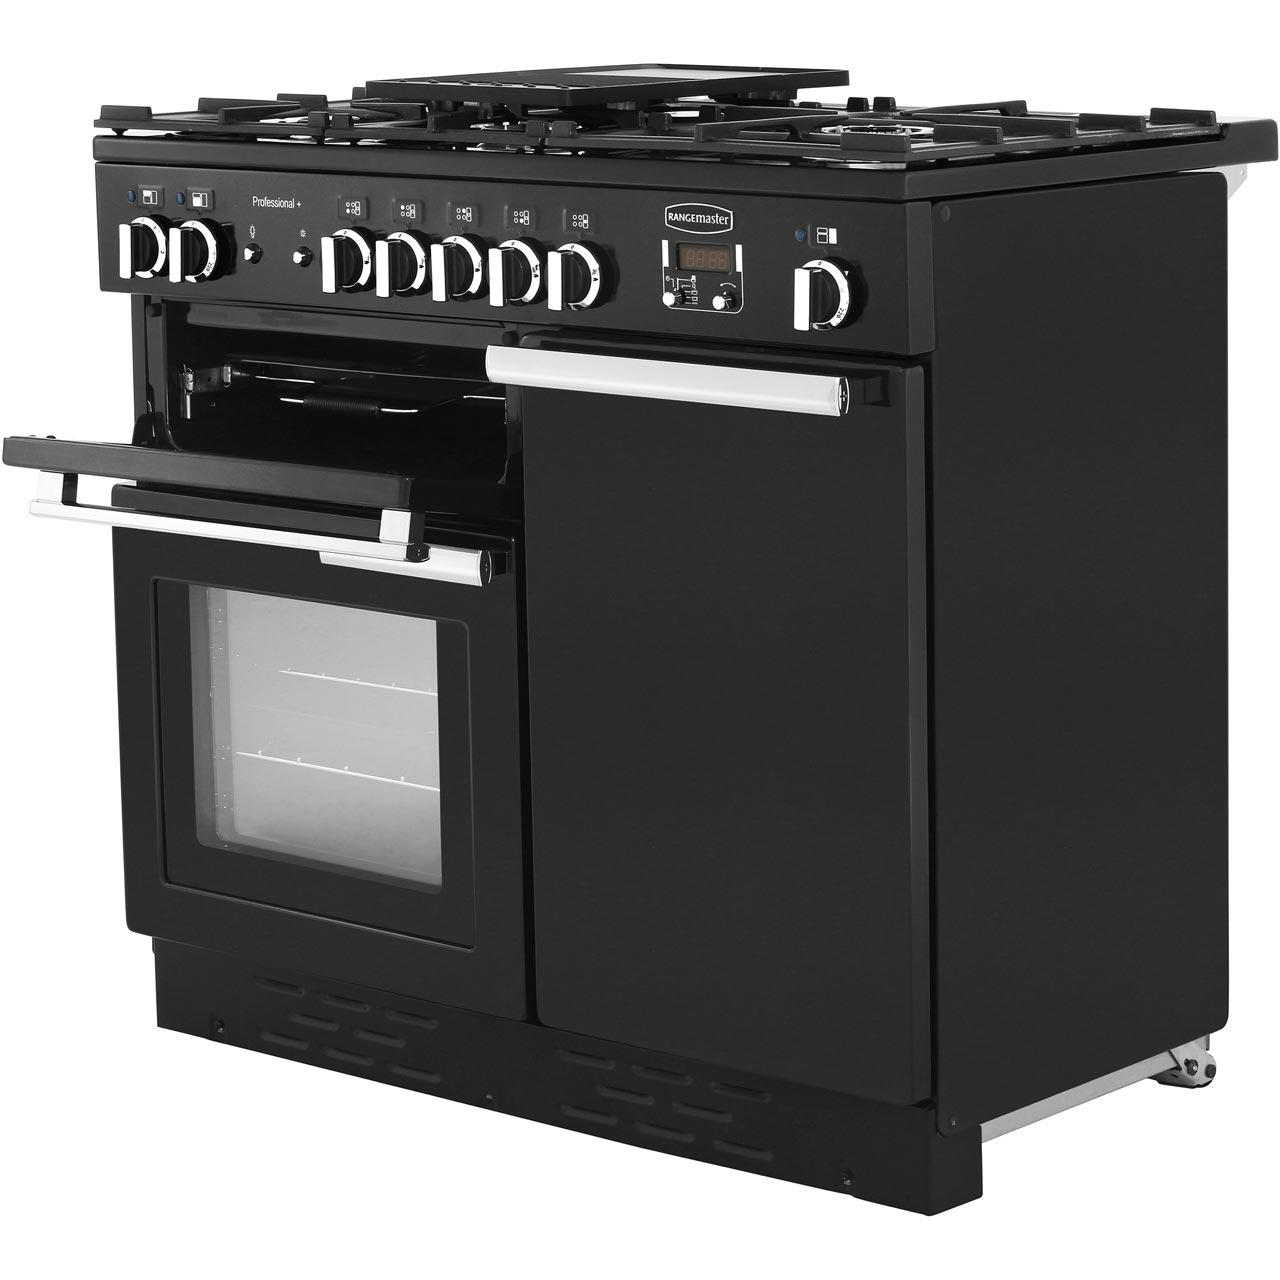 Rangemaster Dual Fuel Range Cooker in Black